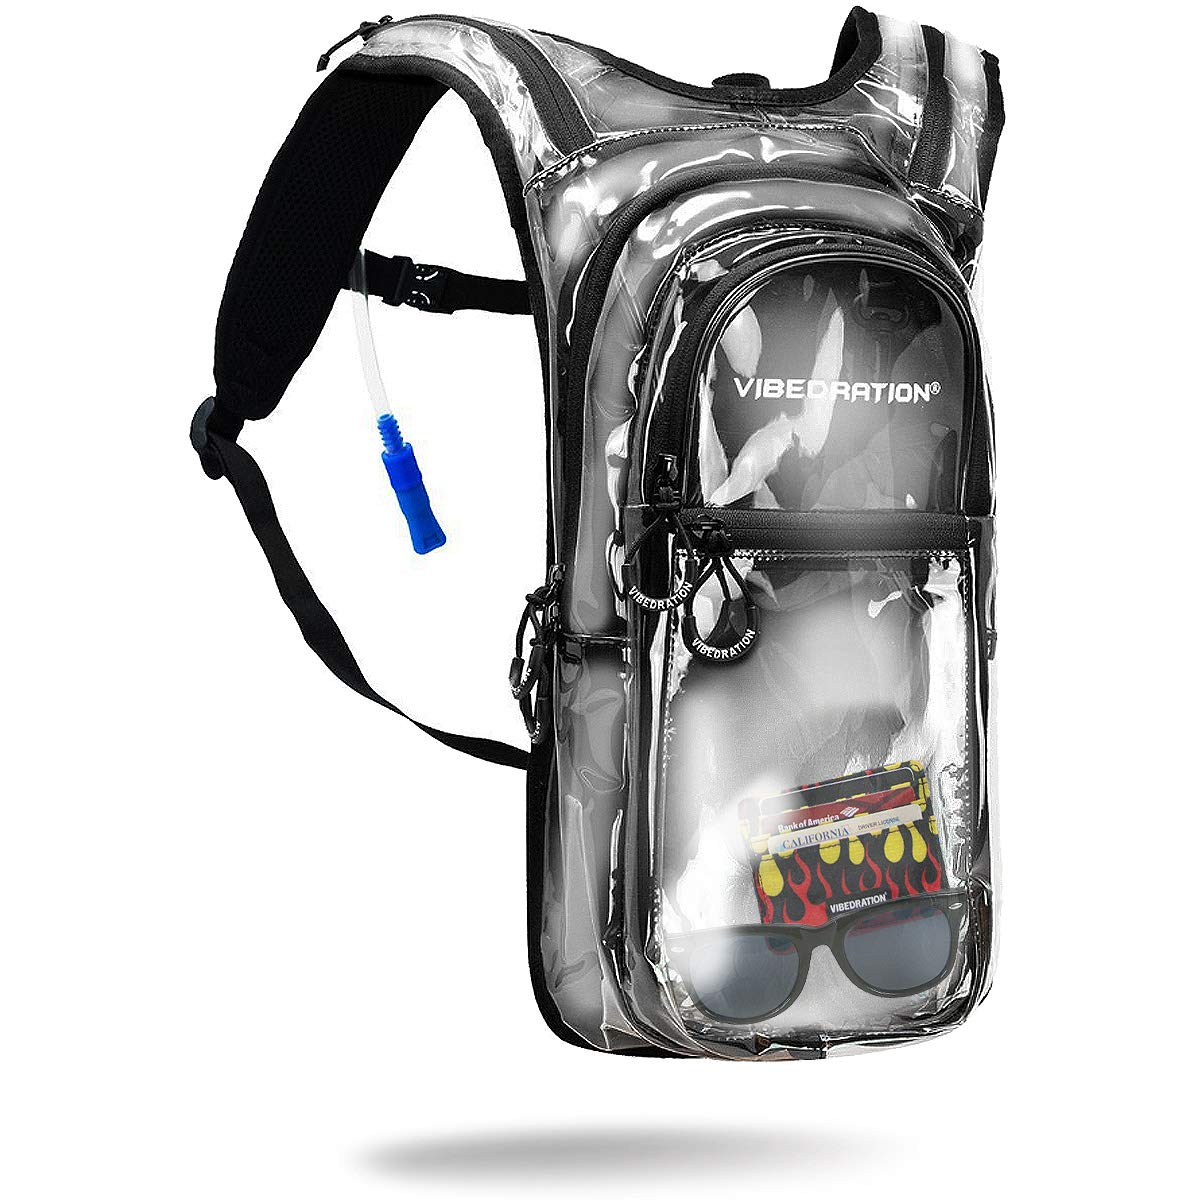 Vibedration VIP 2 Liter Clear Hydration Pack | Festival Rave Hydration, Hiking Camping Backpack (Clear)